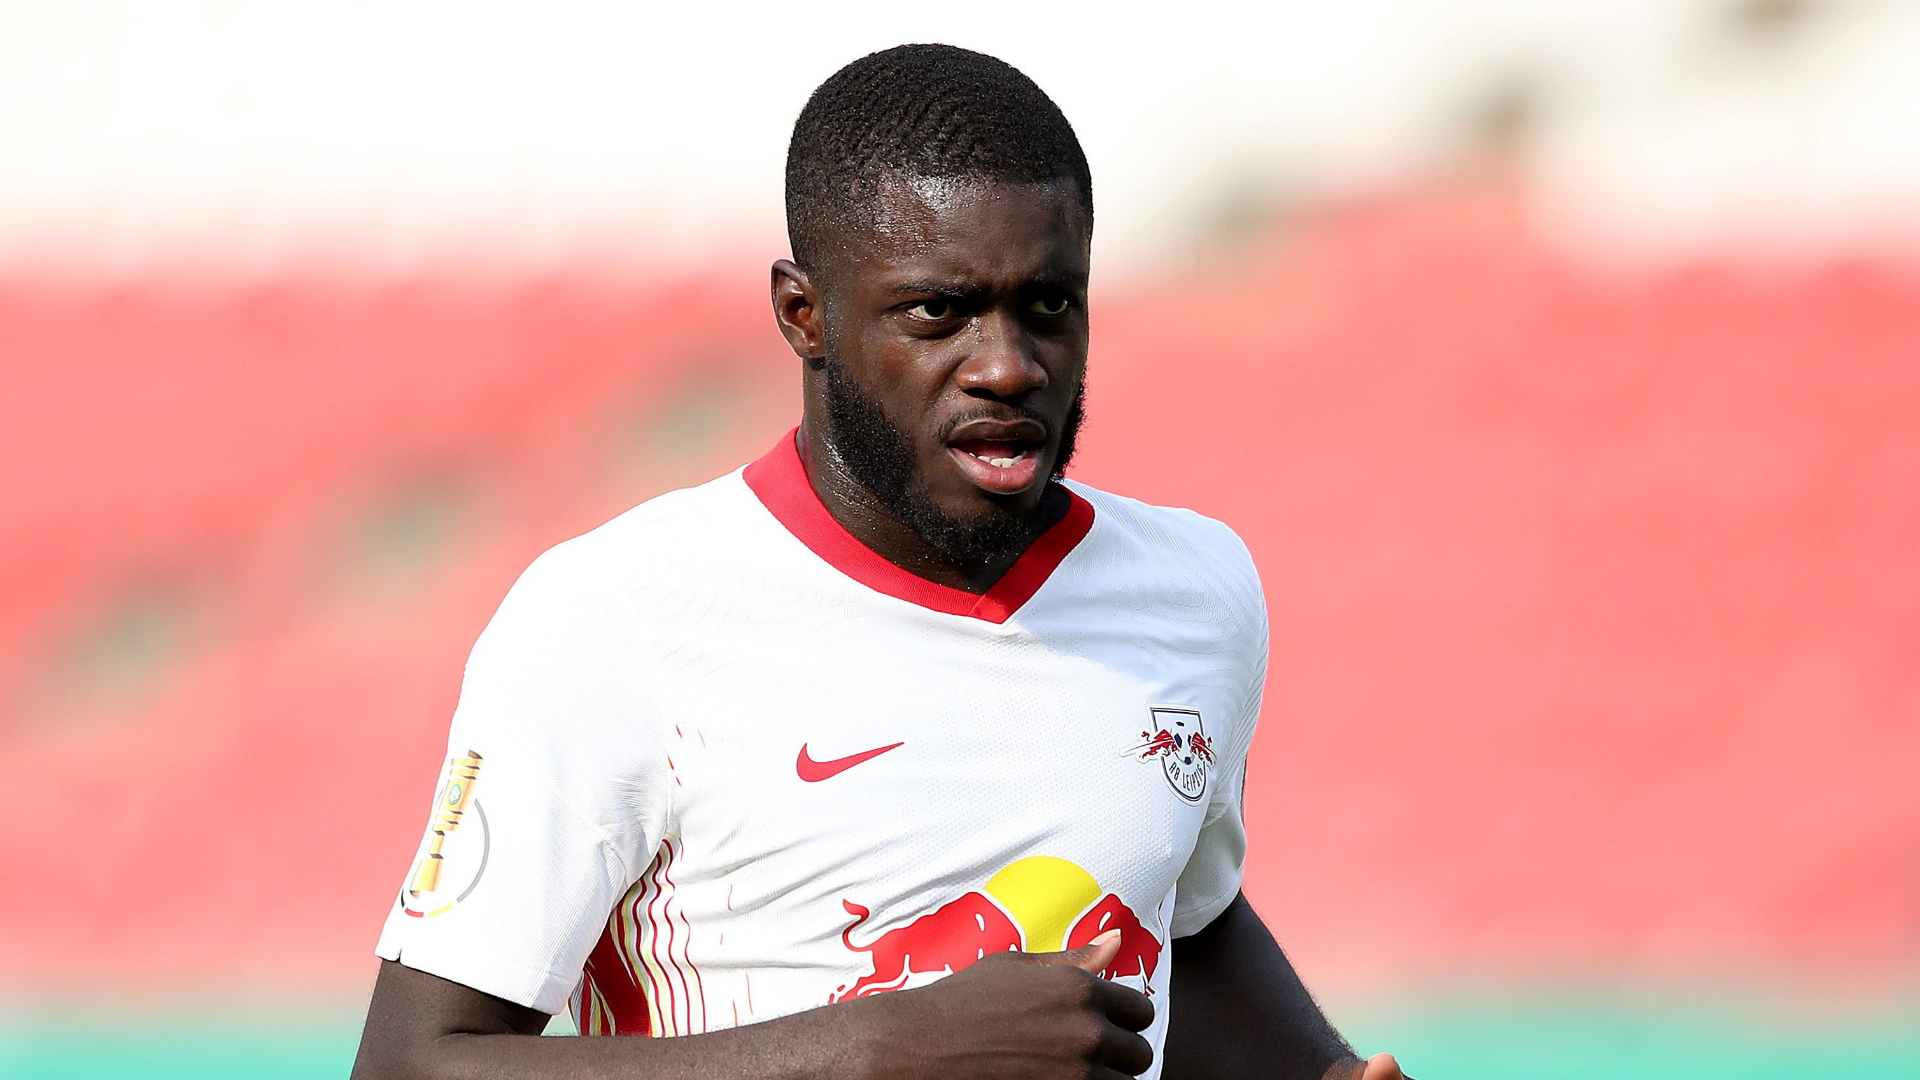 Liverpool & Chelsea interested in Upamecano, claims Rummenigge, as Bayern plan swoop for RB Leipzig defender